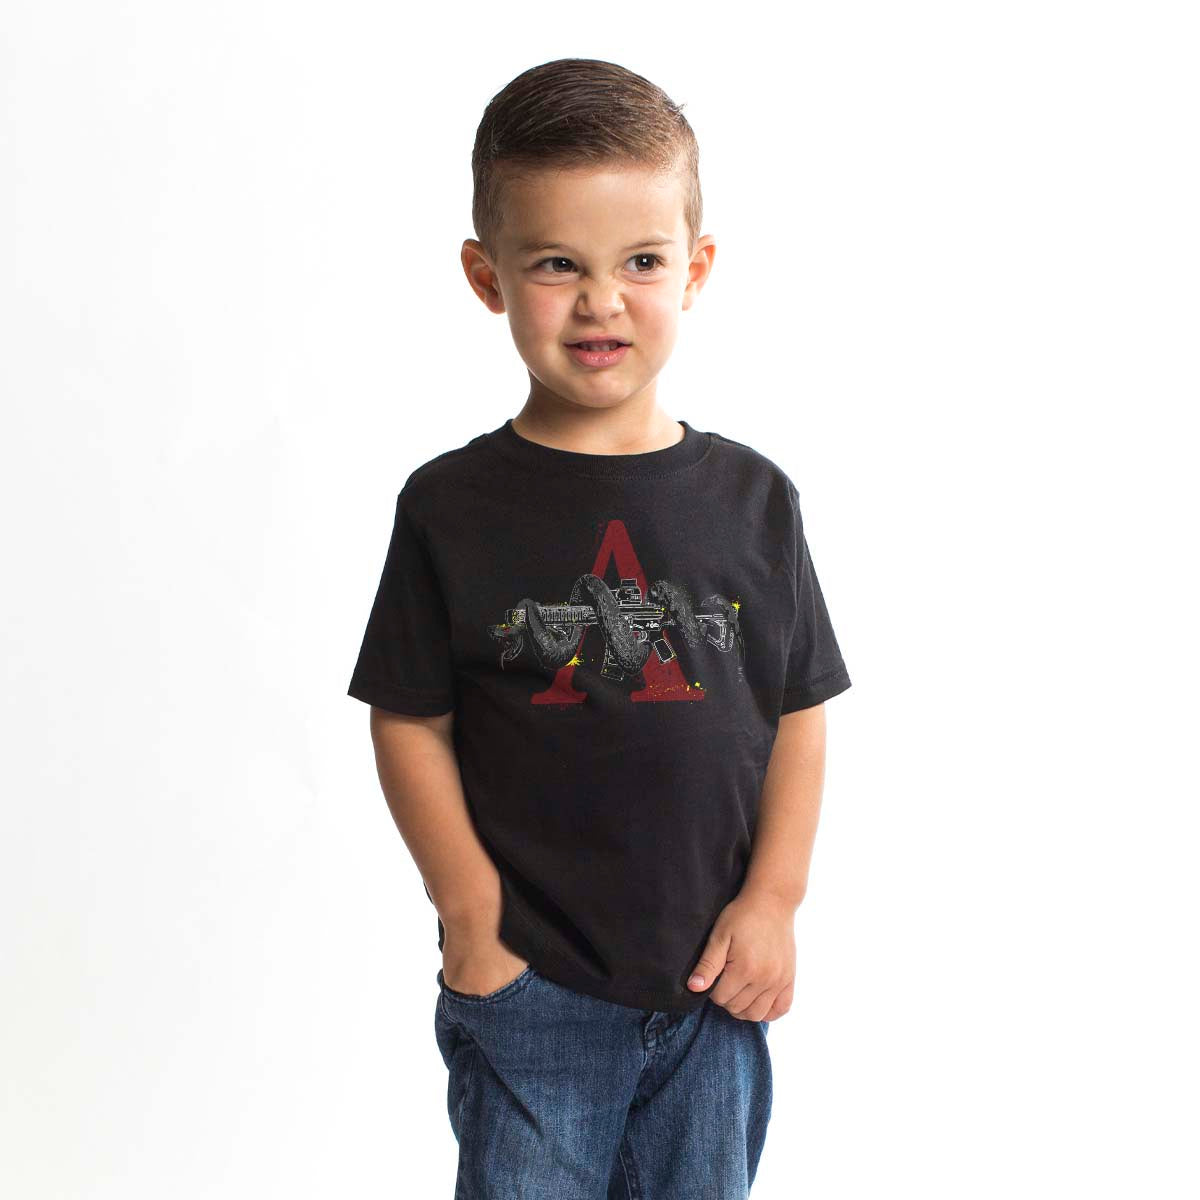 Fangs Out - Youth - Black - T-Shirts - Pipe Hitters Union